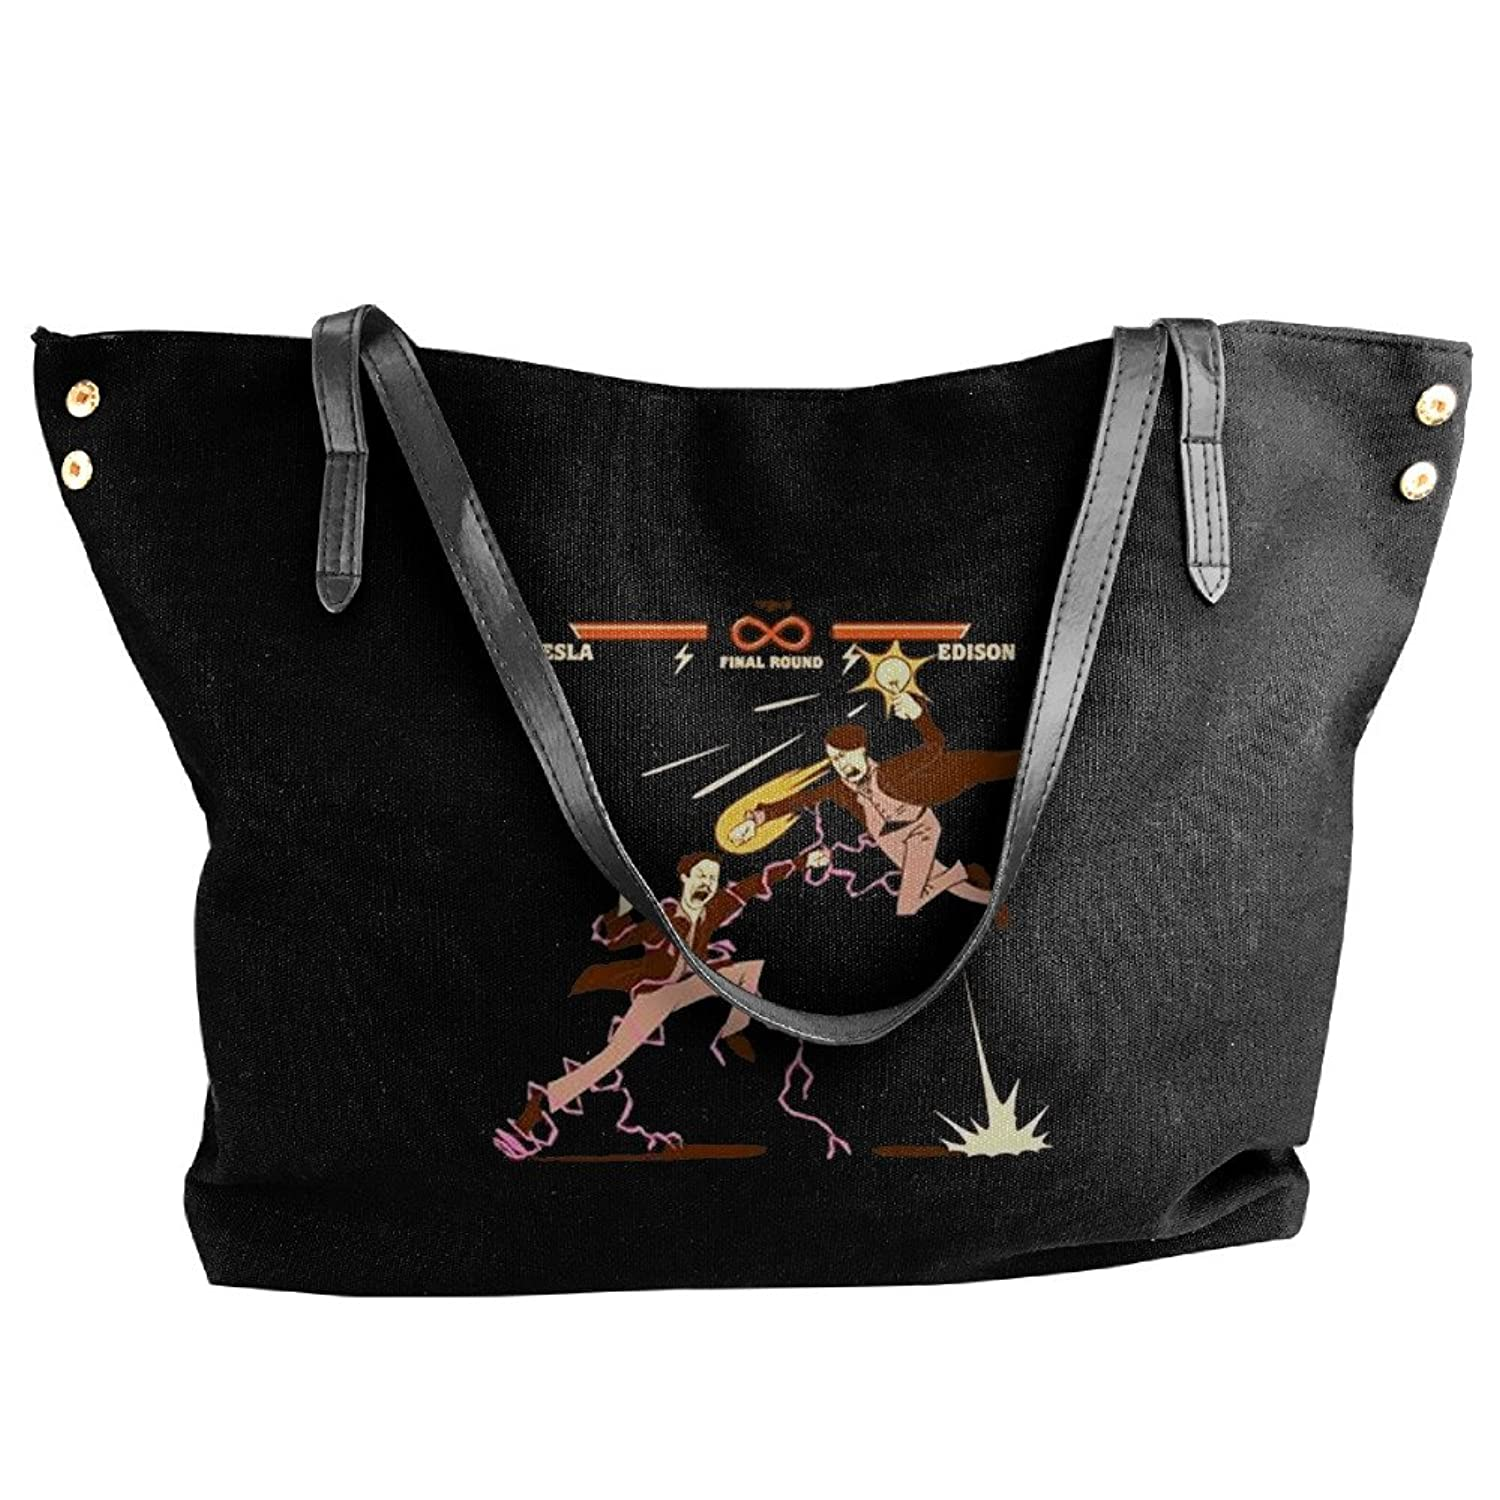 Funny Fight Game Famous Physicist Tesla VS Edison Designed Canvas Top Handle Handbags For Women